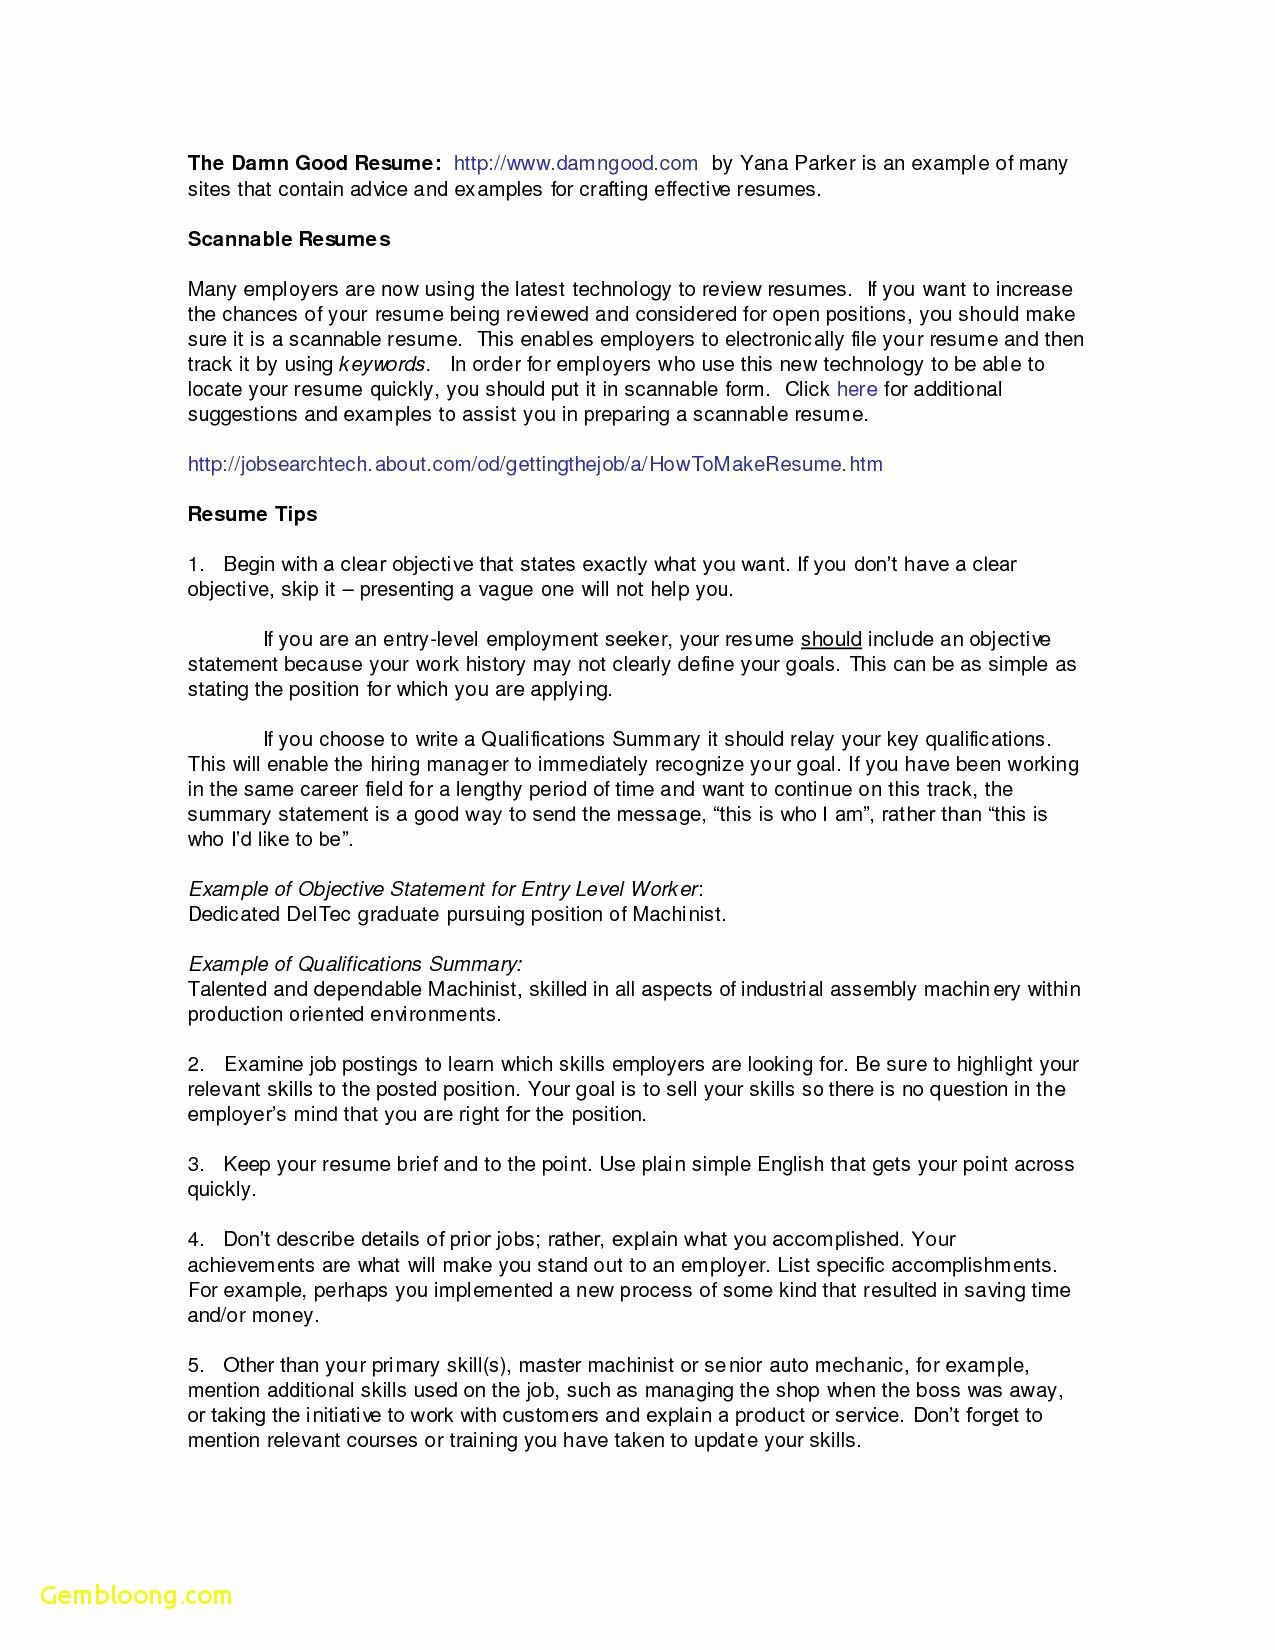 Sample Resume for Dental assistant with No Experience - 75 Elegant S Emt Resume Skills Examples